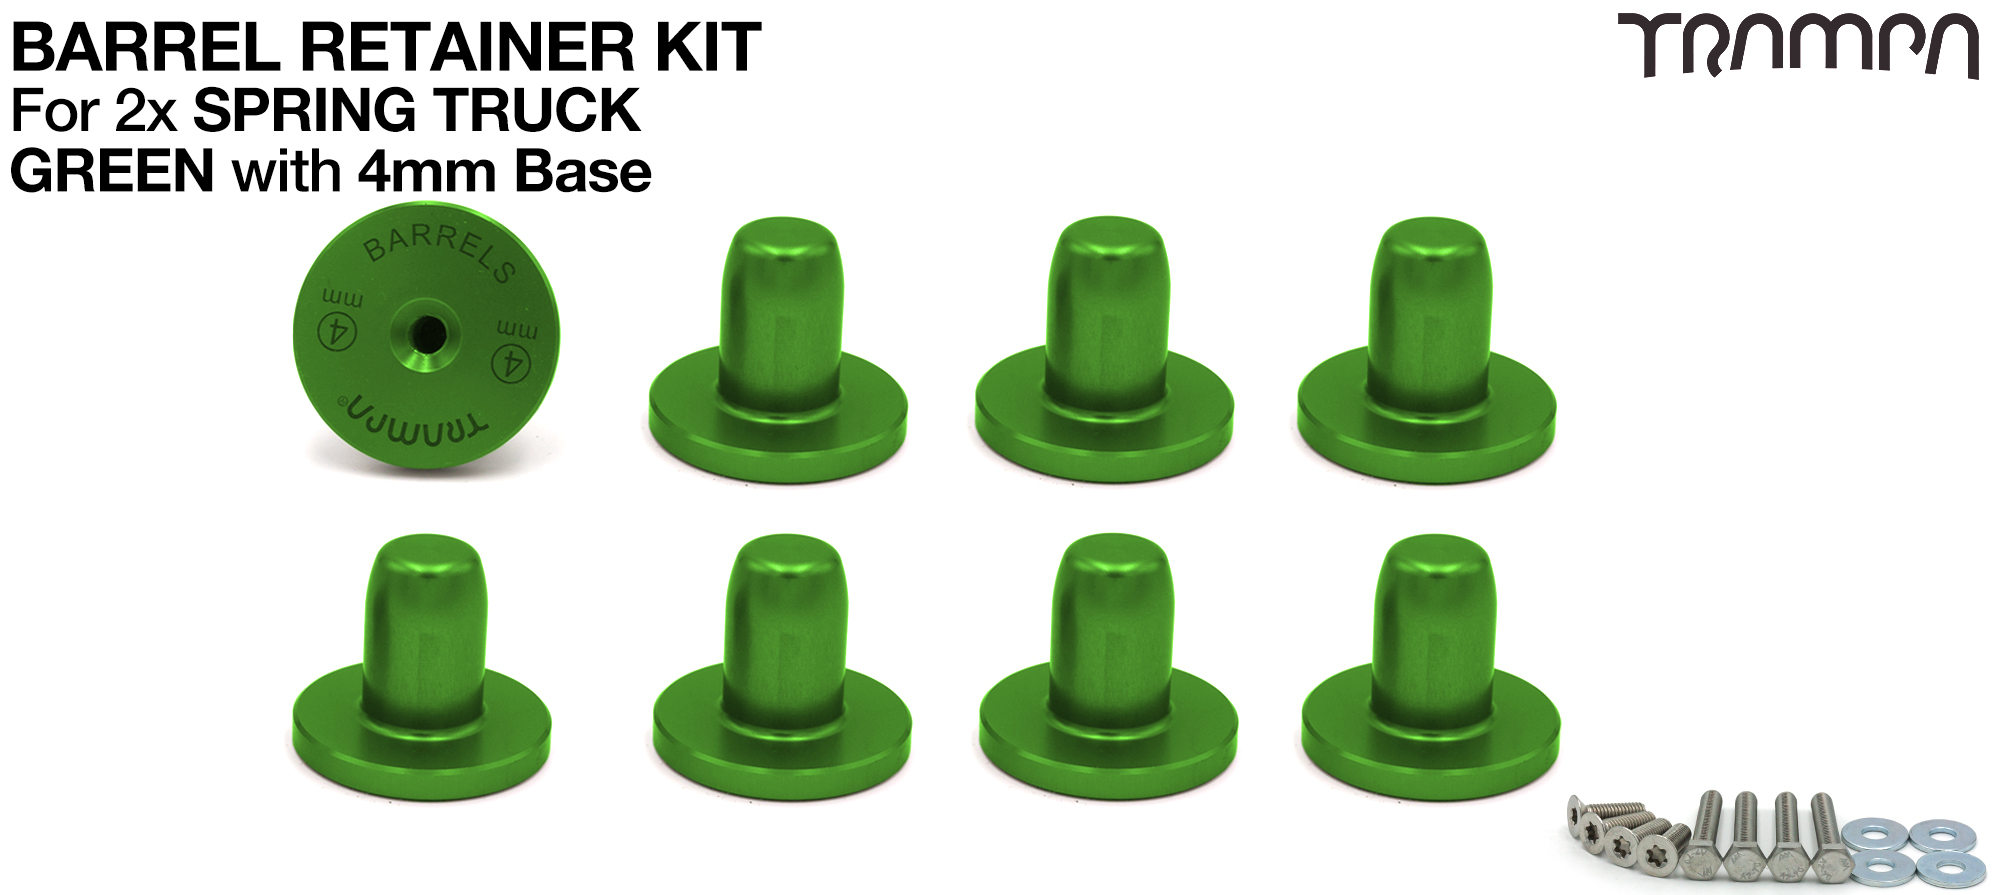 GREEN 4mm Barrel Retainers x8